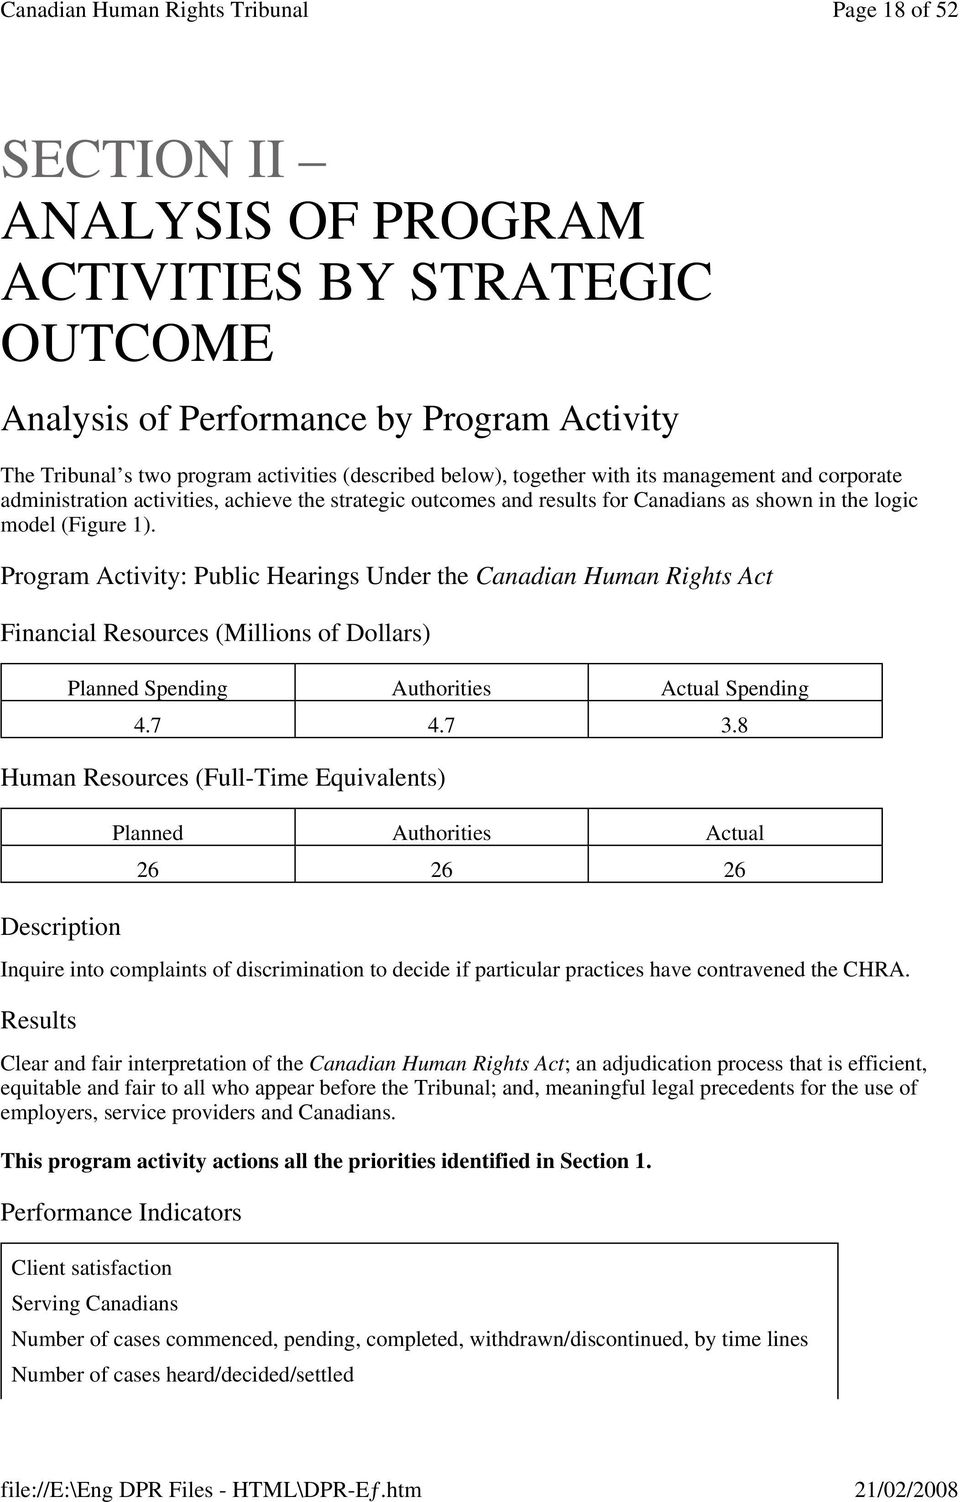 Program Activity: Public Hearings Under the Canadian Human Rights Act Financial Resources (Millions of Dollars) Human Resources (Full-Time Equivalents) Description Inquire into complaints of